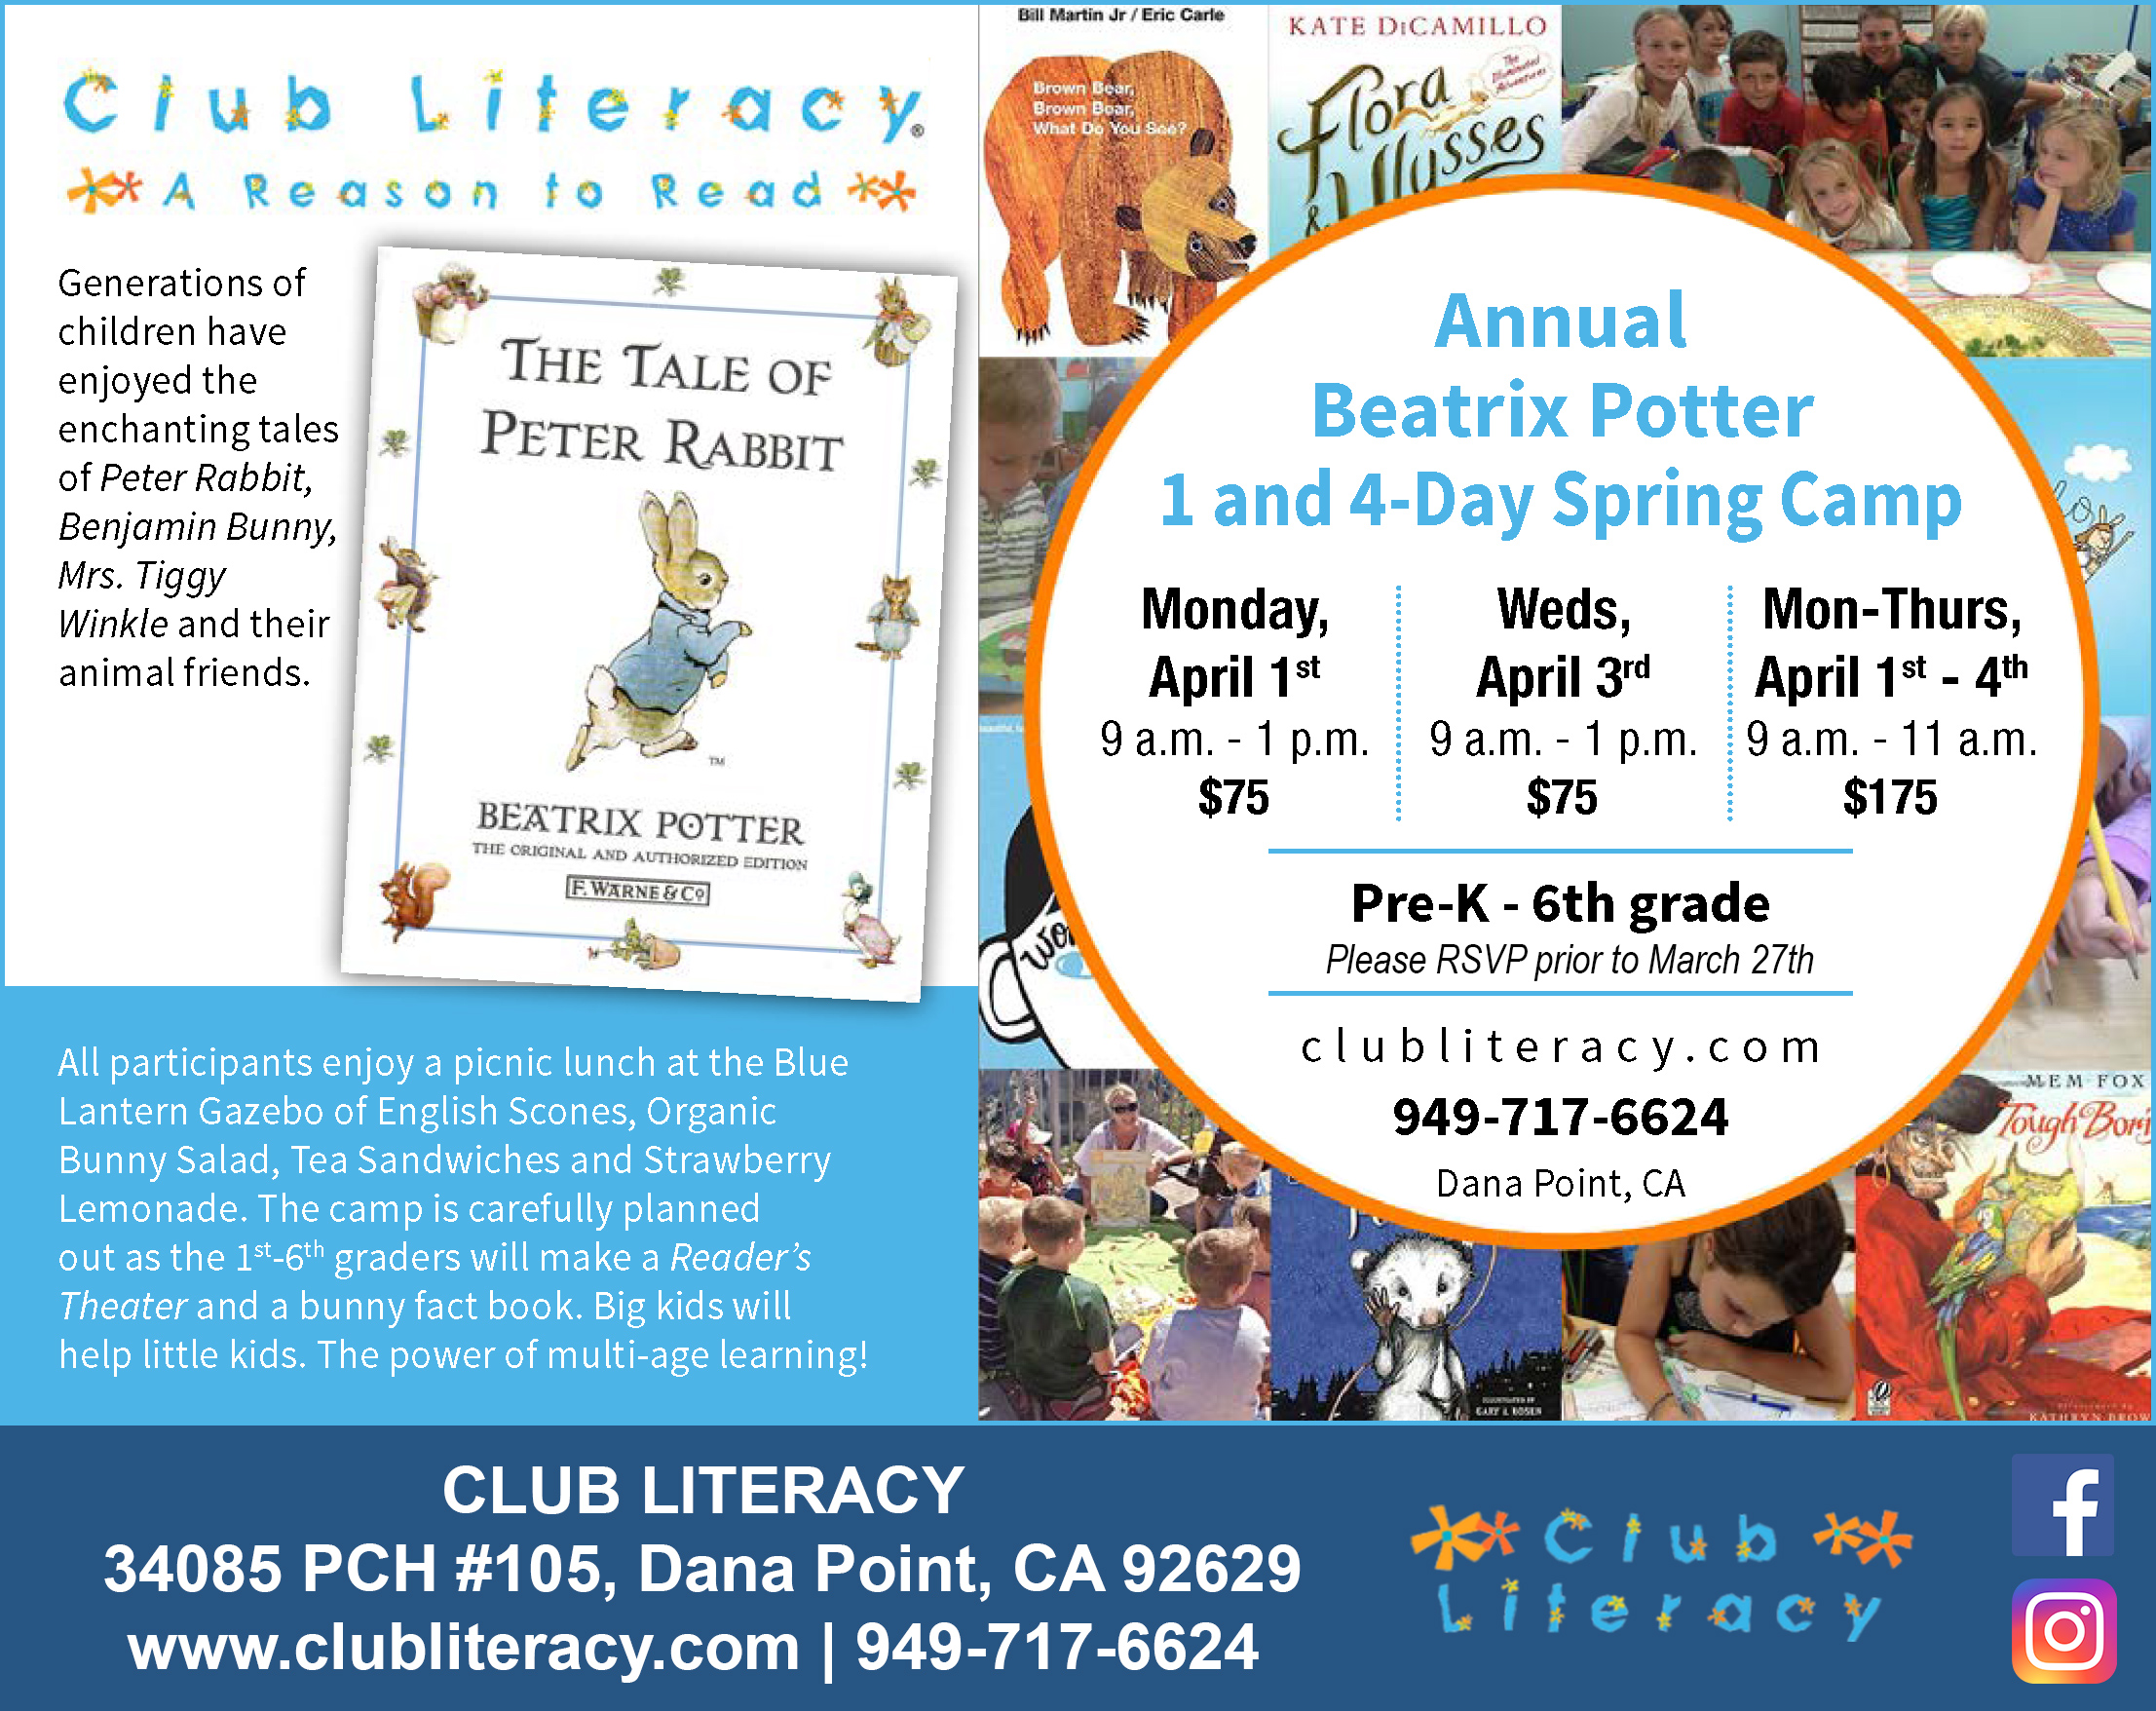 Club-Literacy-Beatrix-Potter-1-Day-Camp-2019---San-Clemente